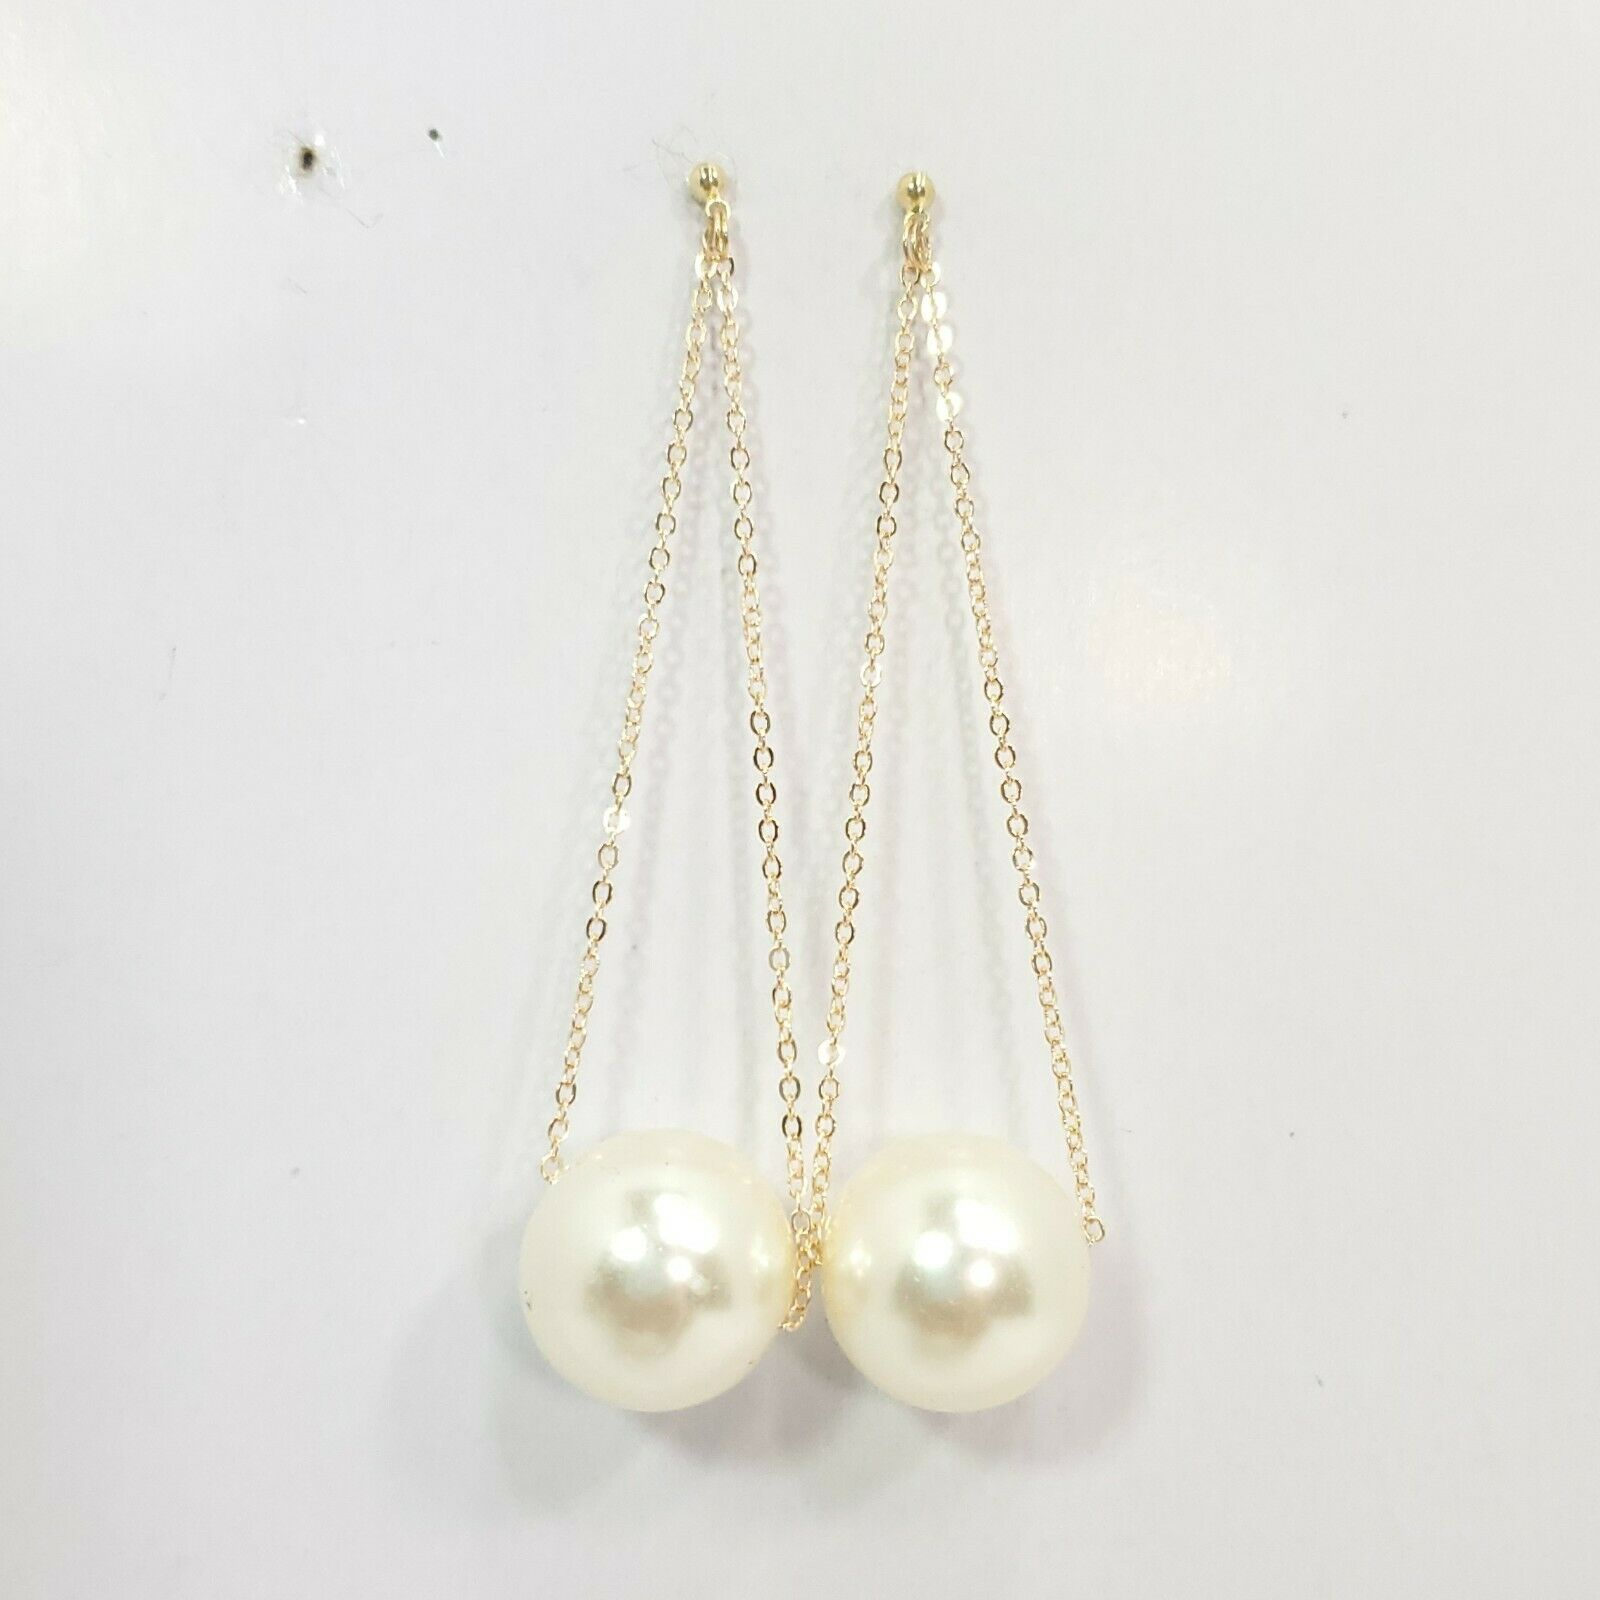 Primary image for E0287 Boho Gold Tone Based Thin Chain Pearl Accented Drop Dangle Post Earrings